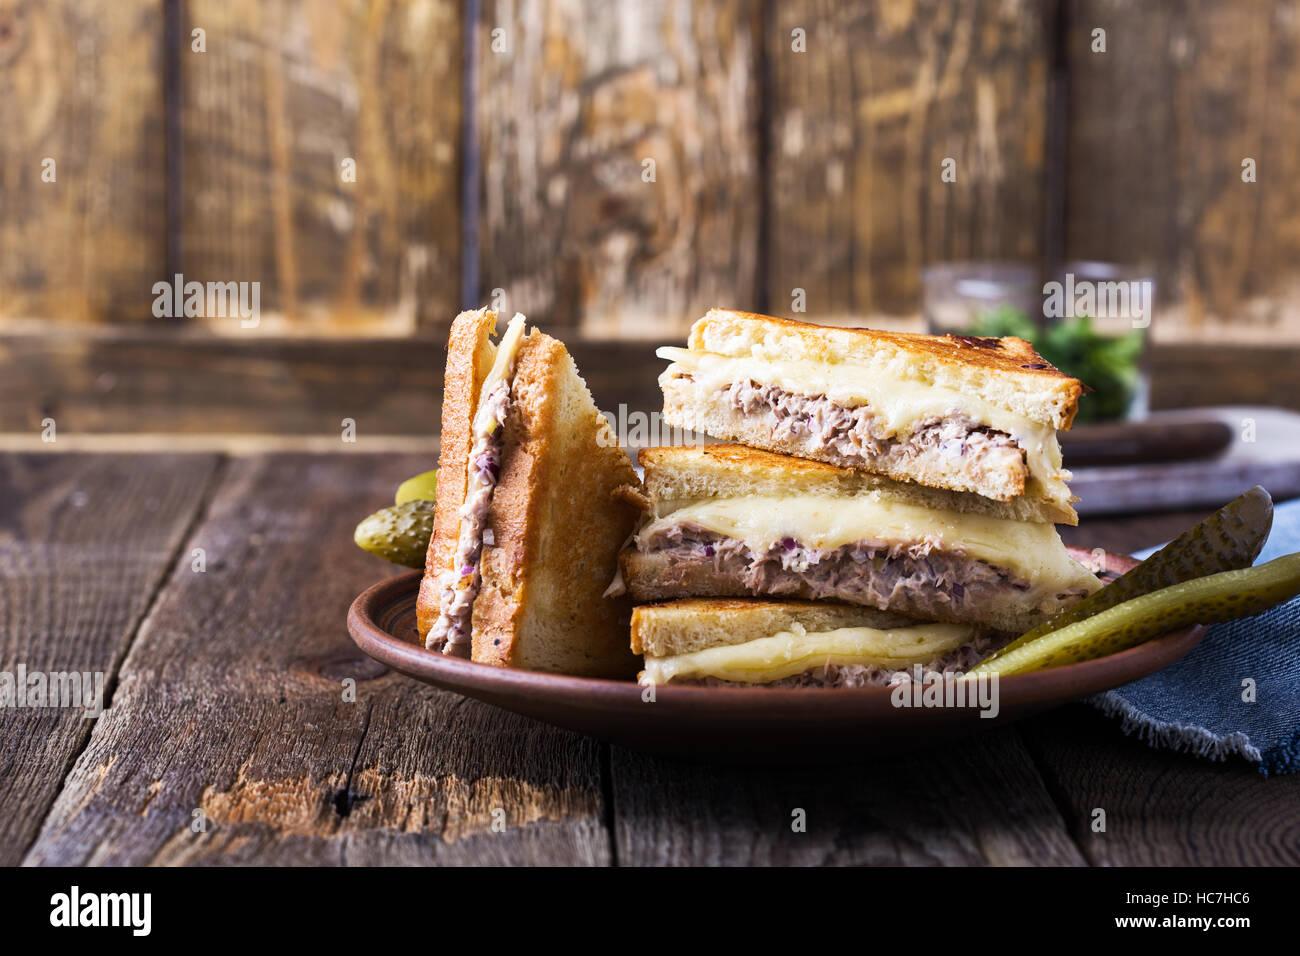 Homemade tuna melt sandwich on rural table - Stock Image